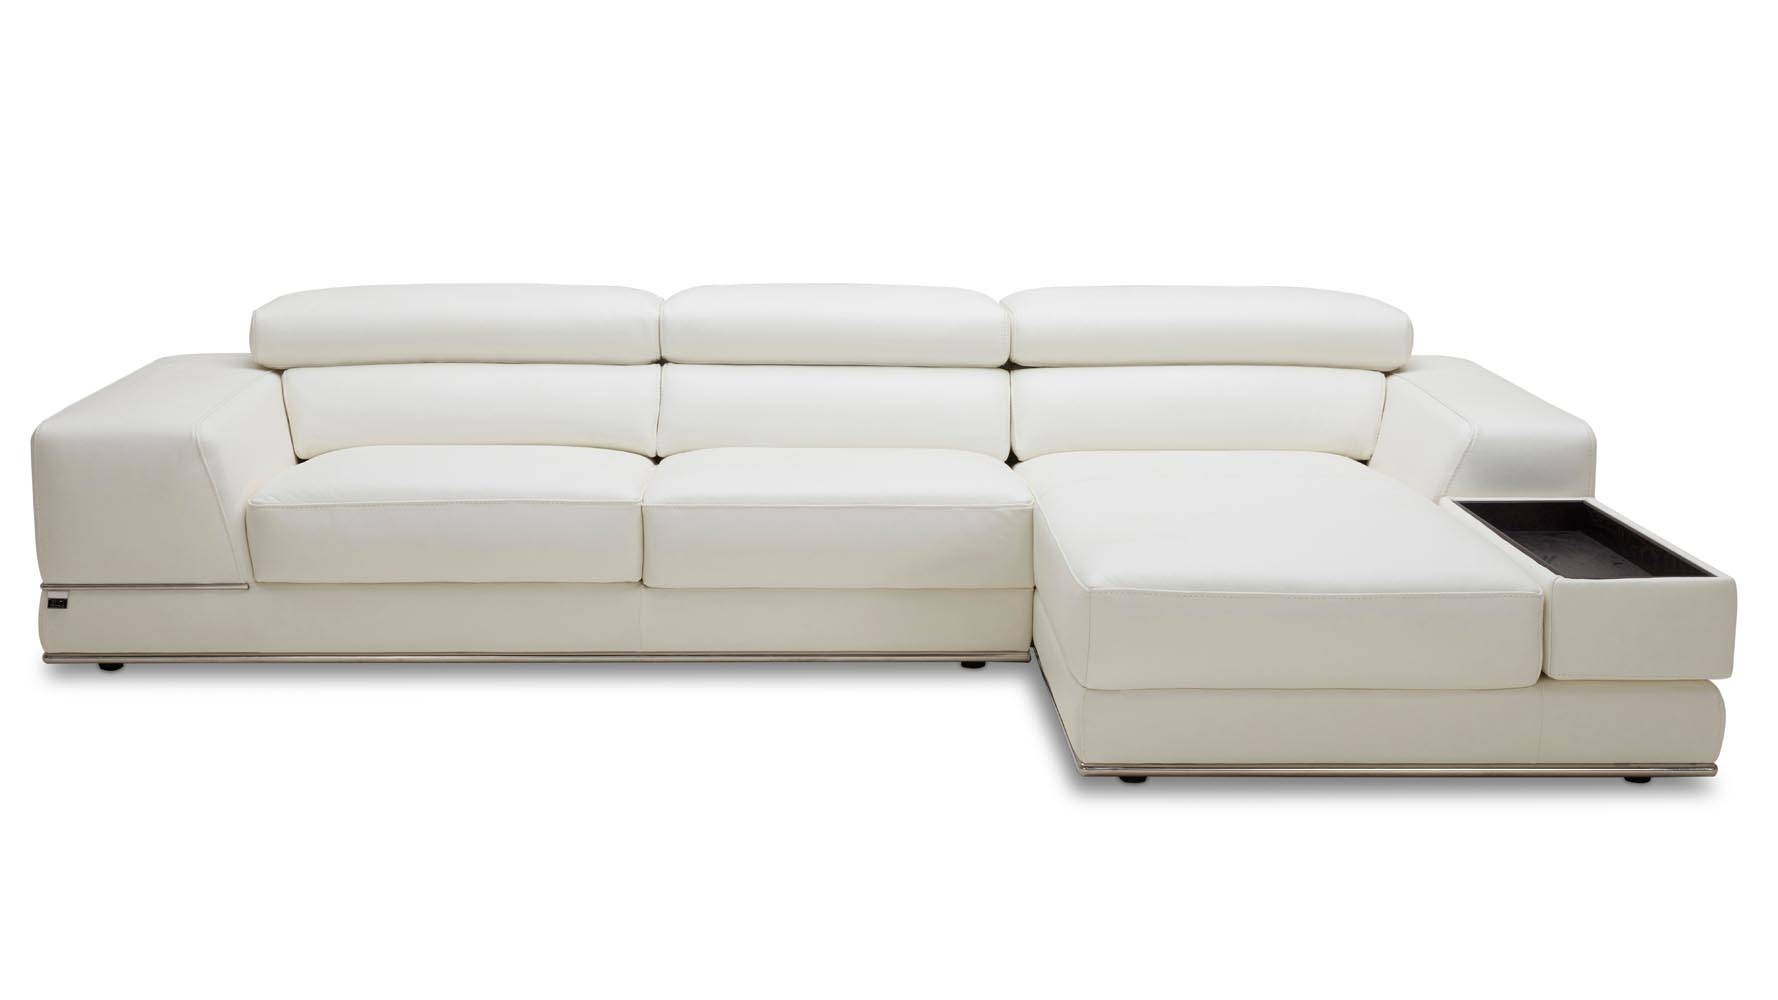 Encore White Leather Sofa | Zuri Furniture within White Leather Sofas (Image 7 of 30)